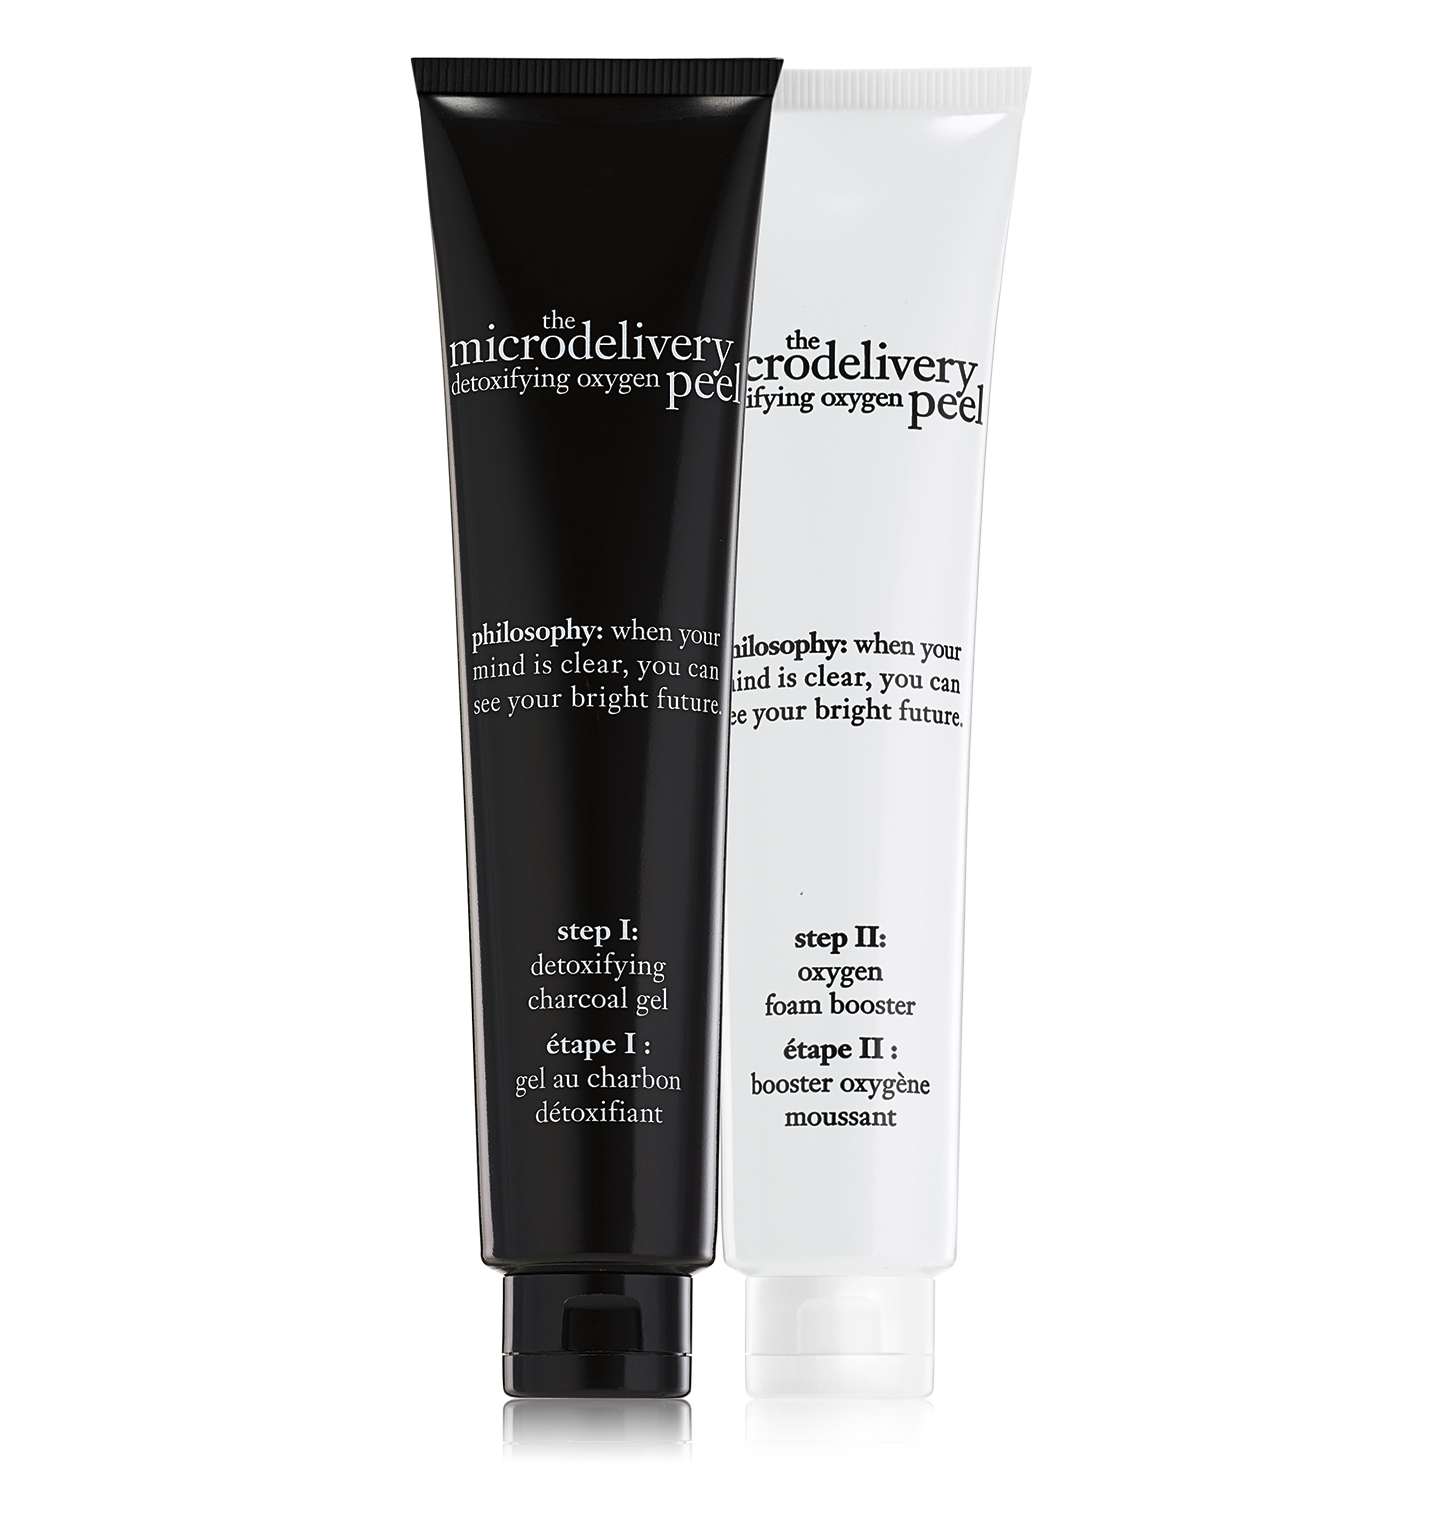 philosophy, microdelivery detoxifying oxygen peel